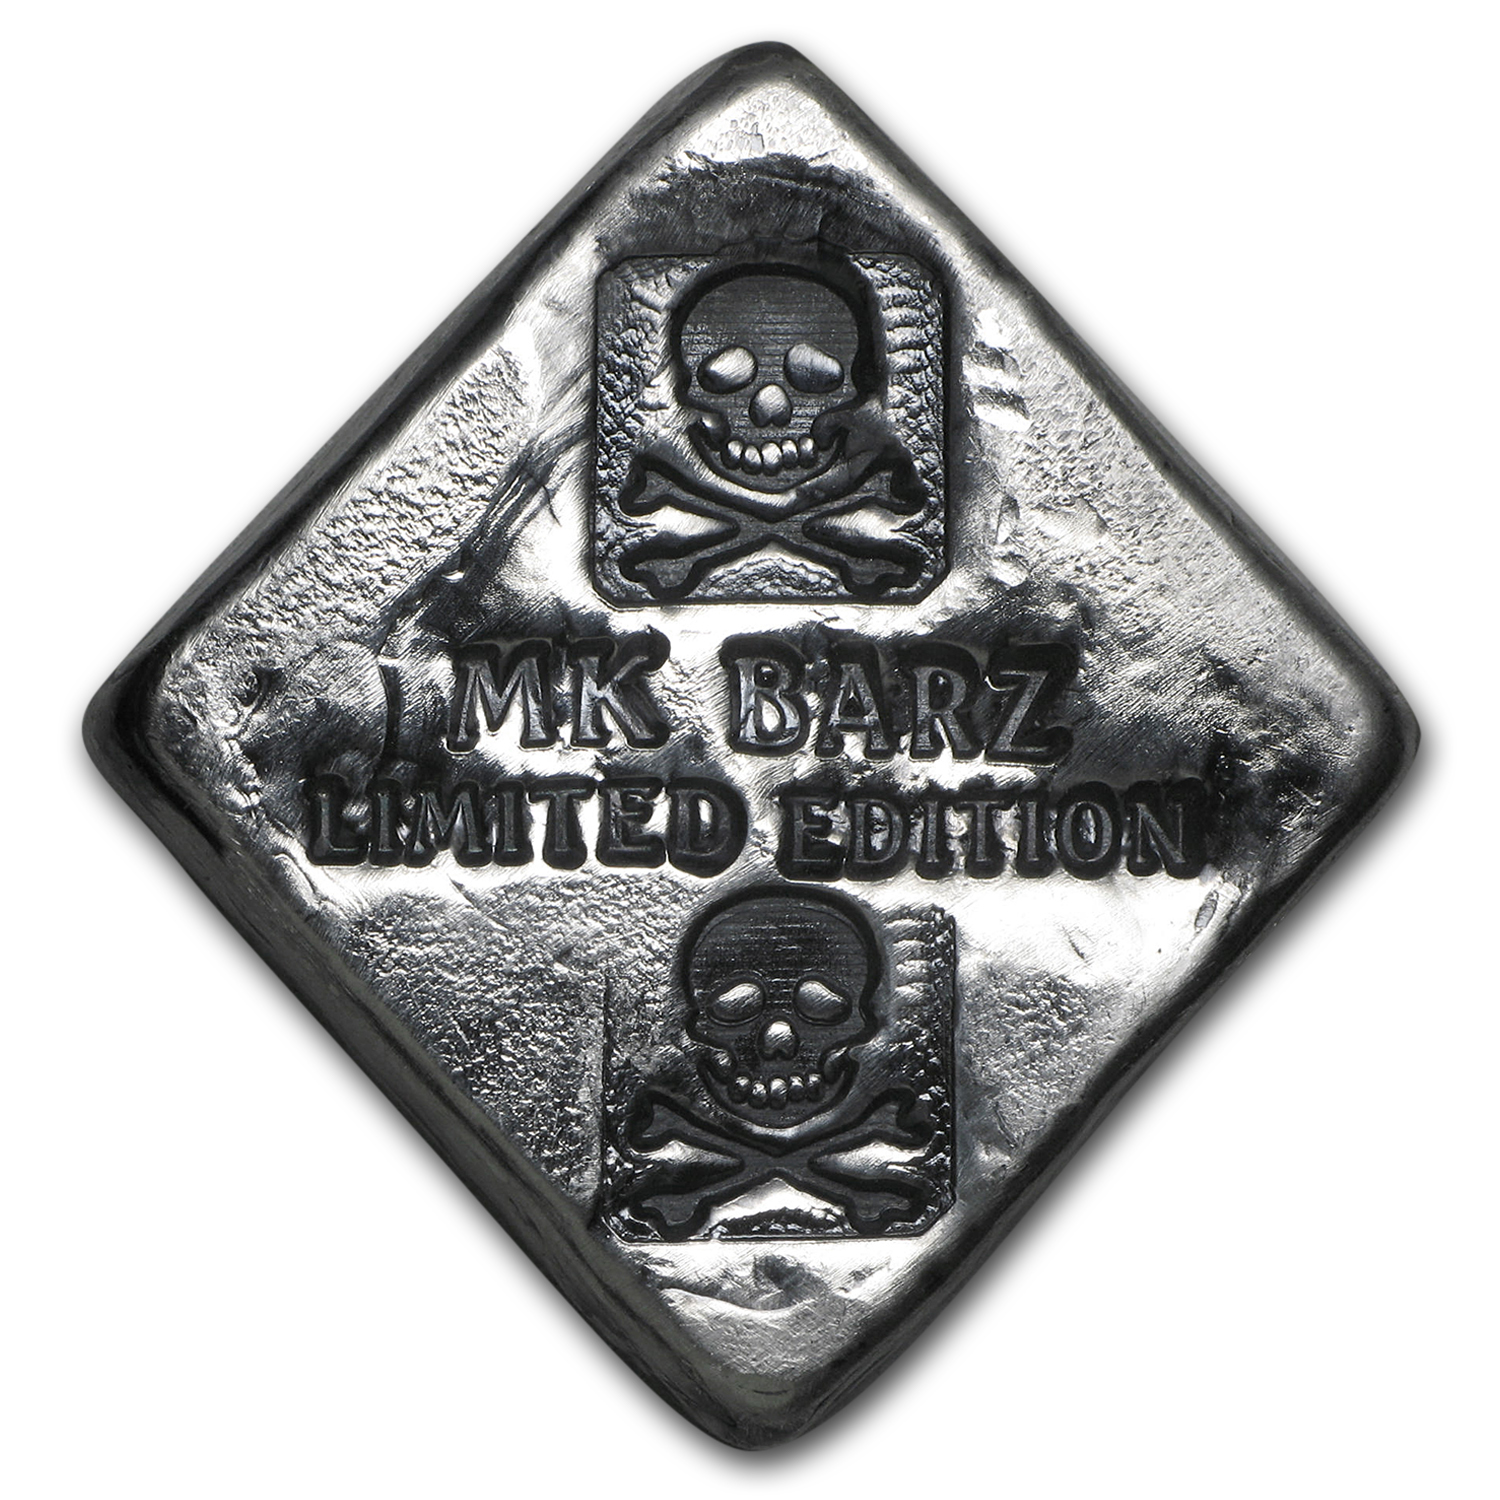 2 oz Silver Diamond - MK Barz & Bullion (Limited, Skull & Bones)